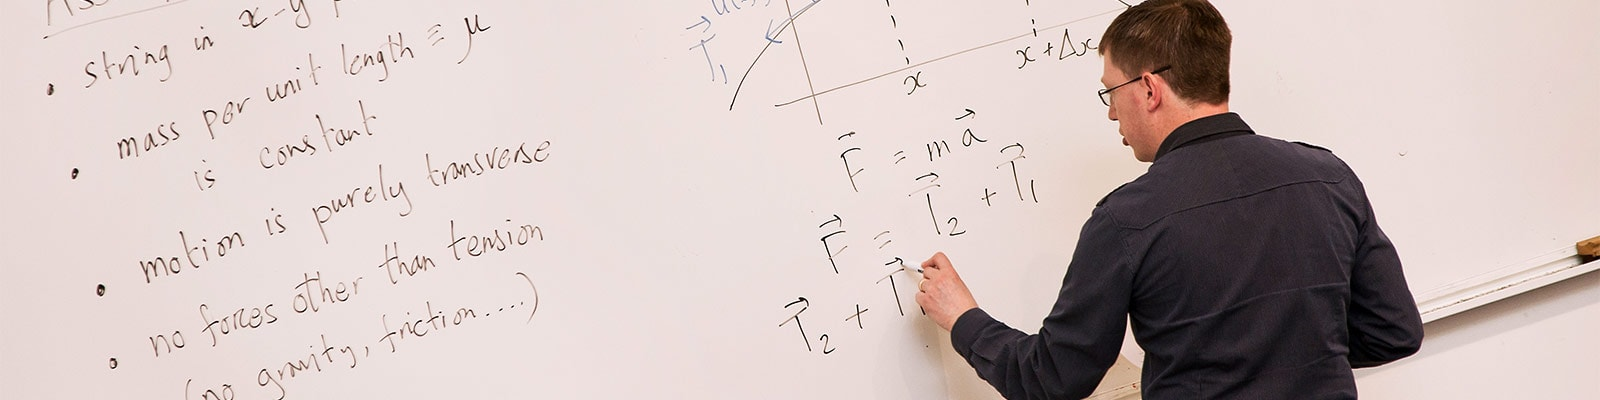 A man writes equations on a whiteboard